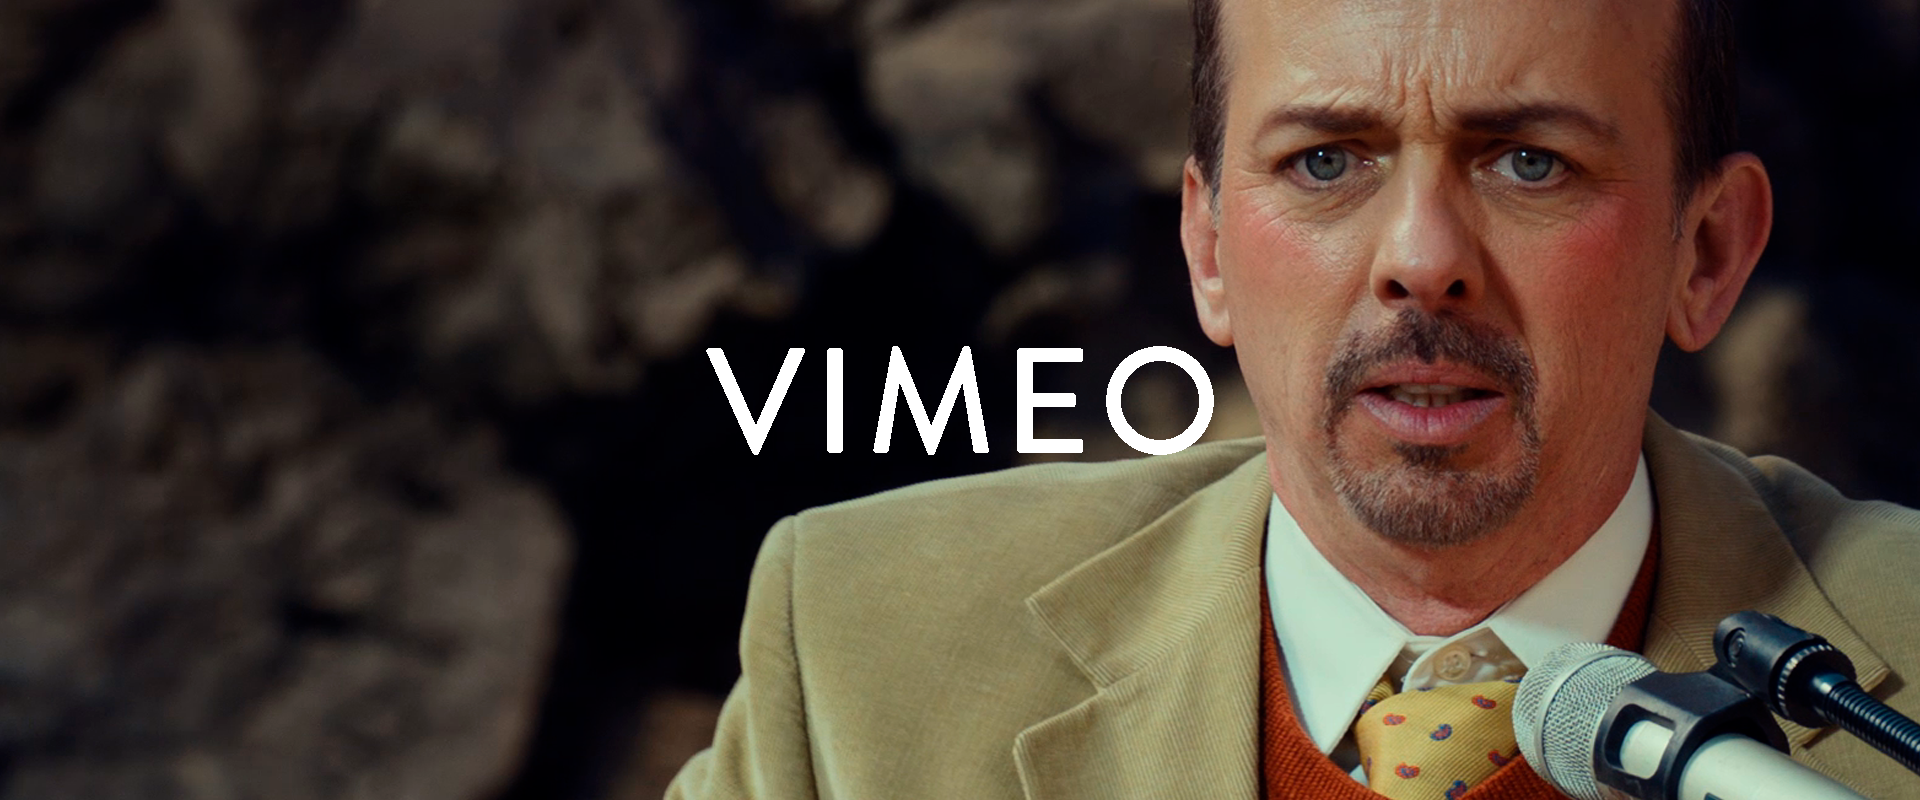 Vimeo_Montage.png